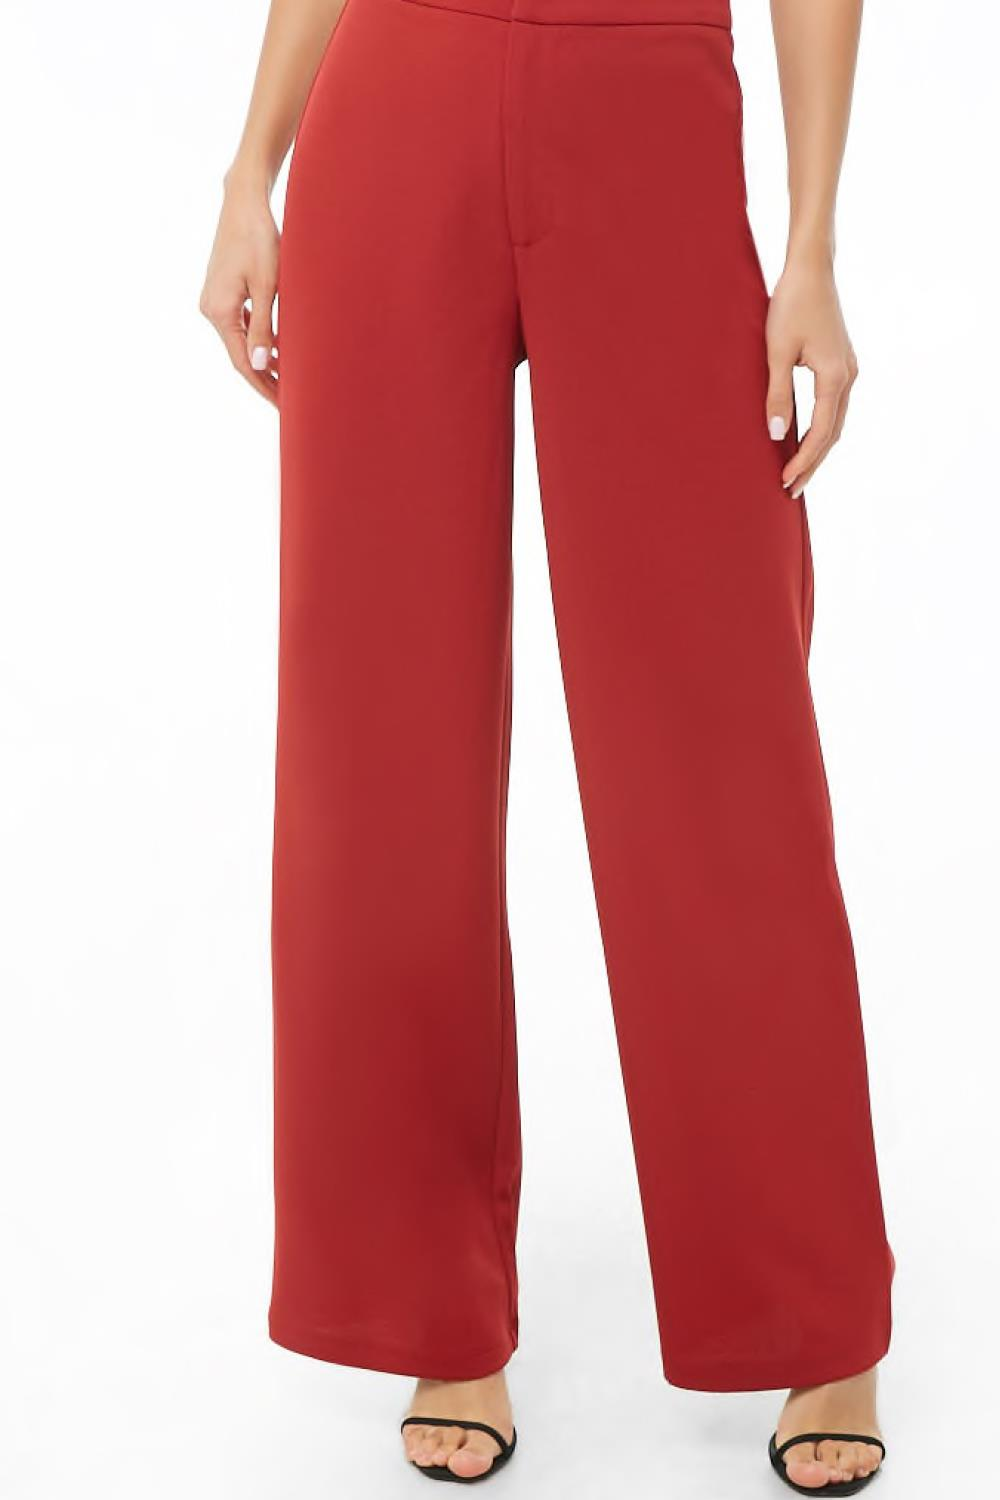 pantalones low cost forever 21 17€